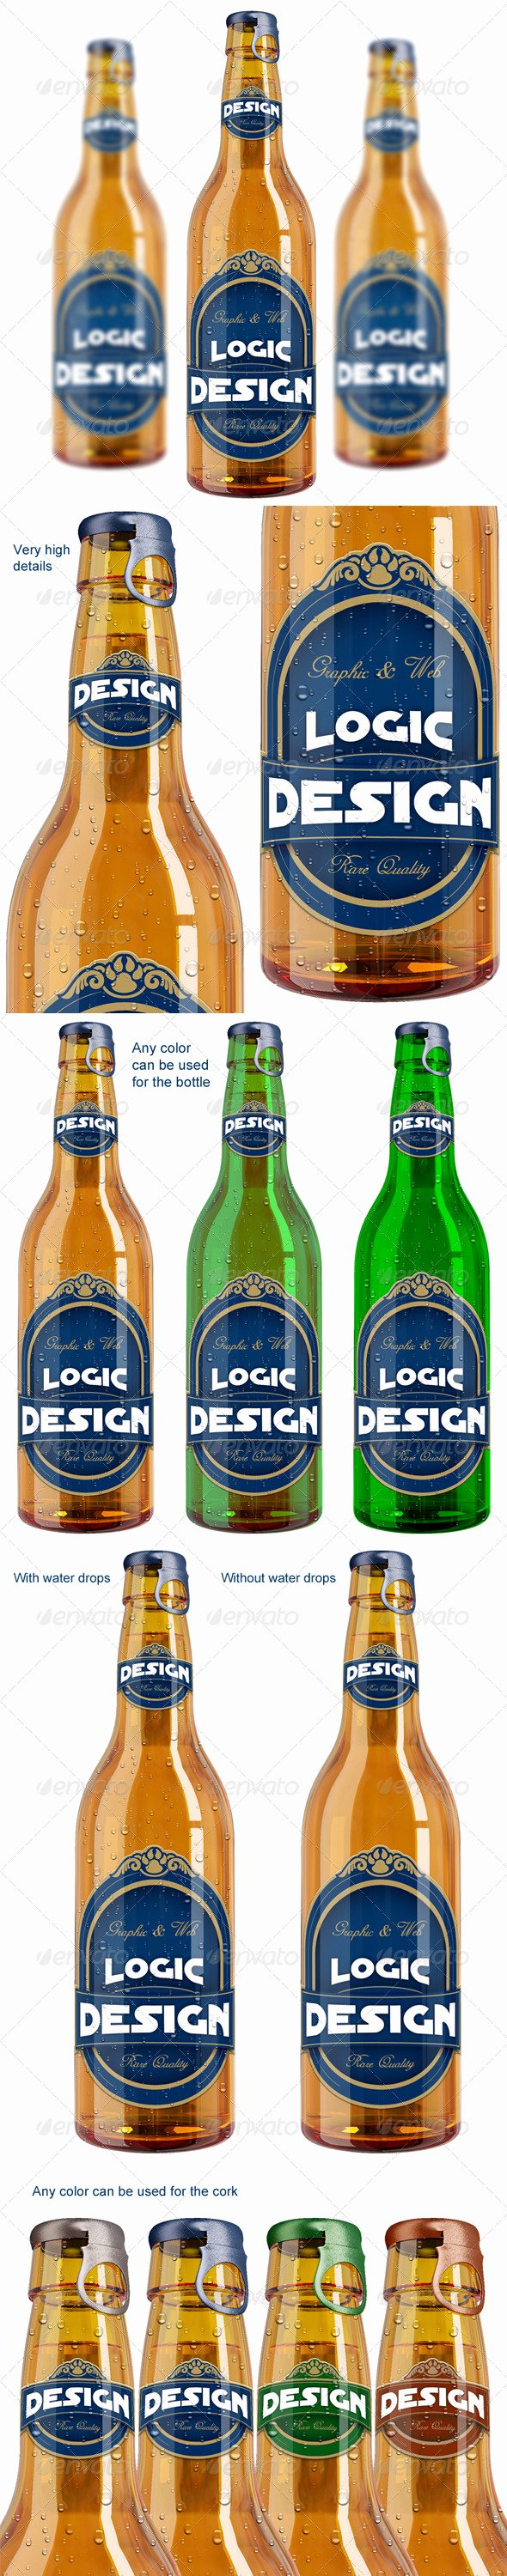 Liquor Bottle Labels Template Fresh Free Liquor Bottle Label Design Template Dondrup